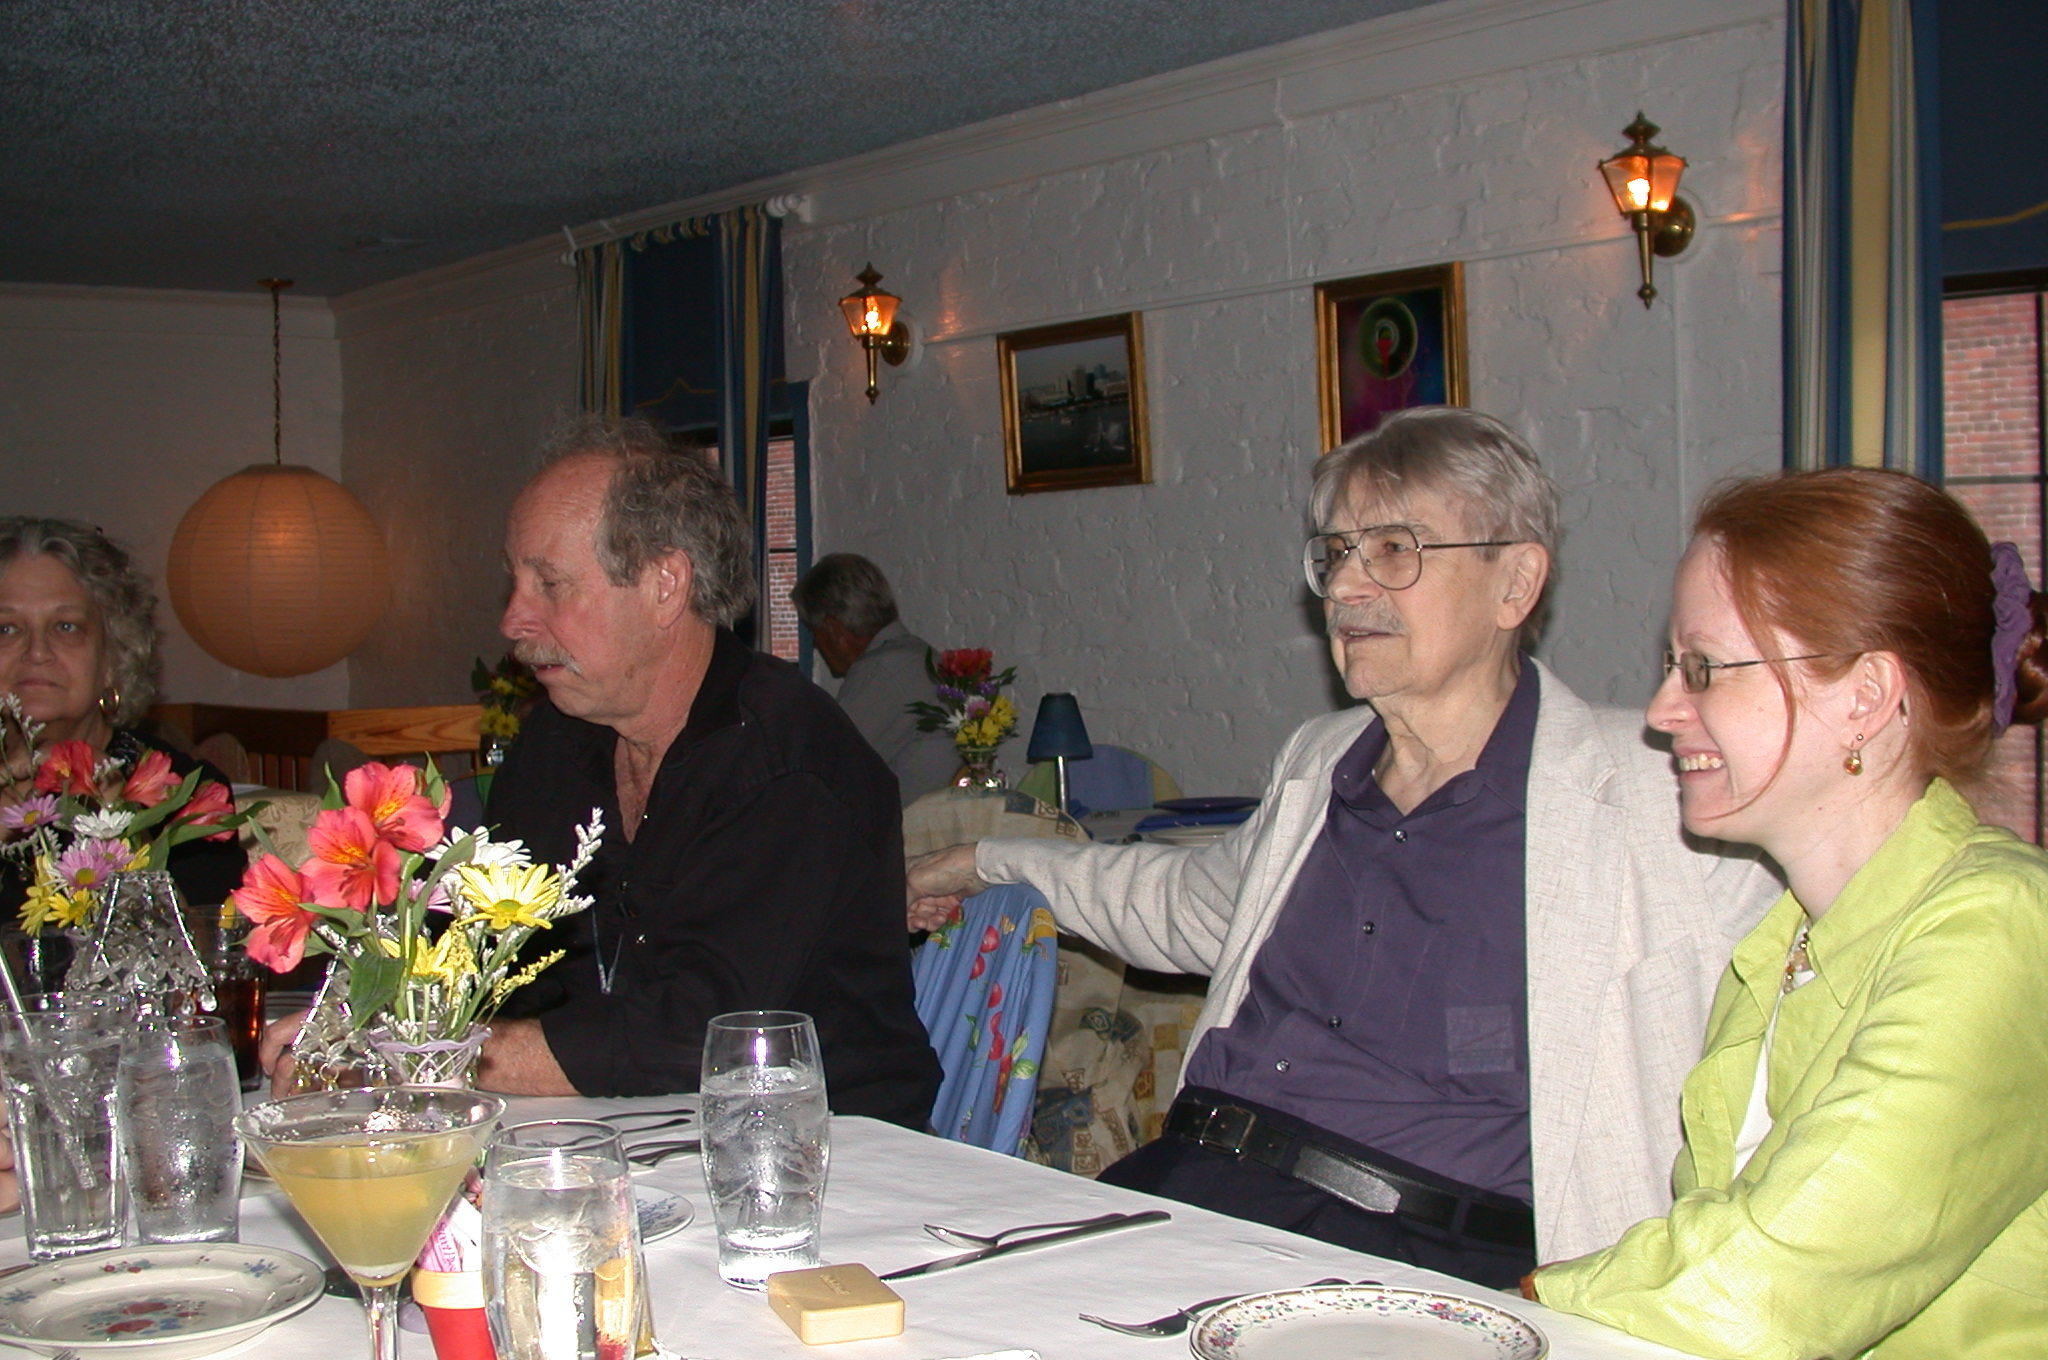 DSCN0056.jpg - ...partial of Anna Jean, Rick, Walter, Mary...